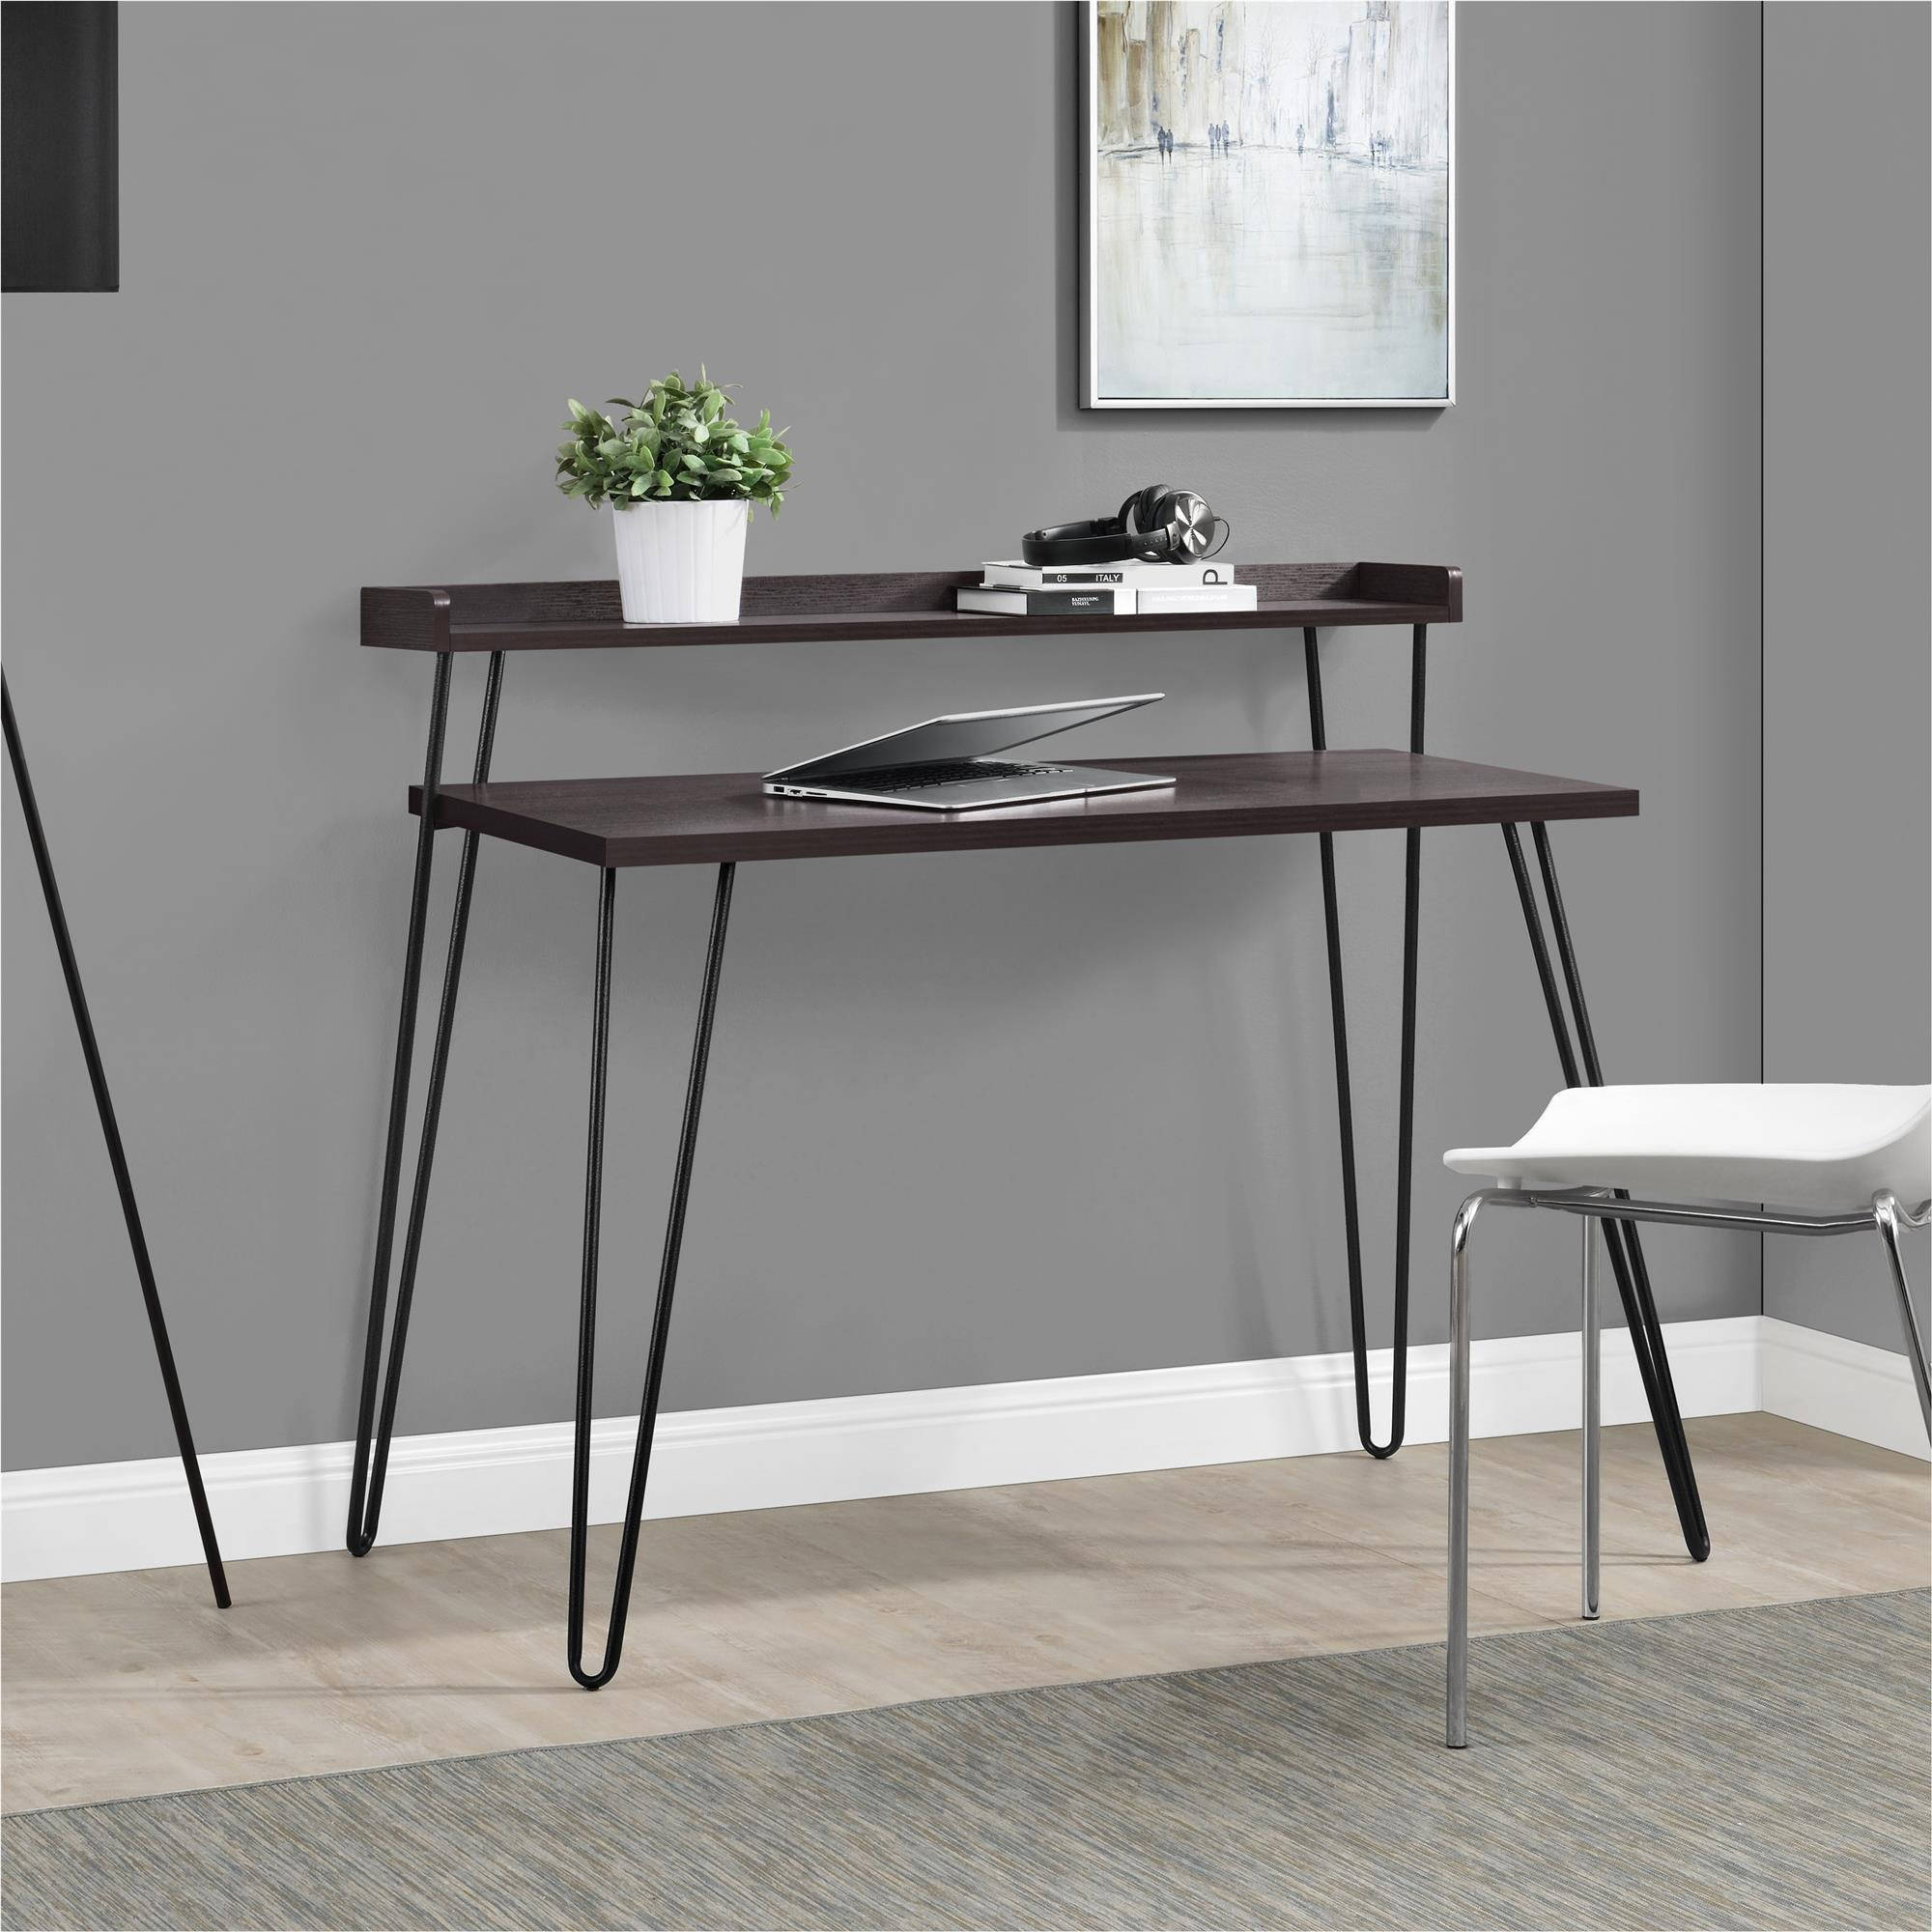 Ameriwood Home Haven Retro Desk with Riser, Multiple Colors